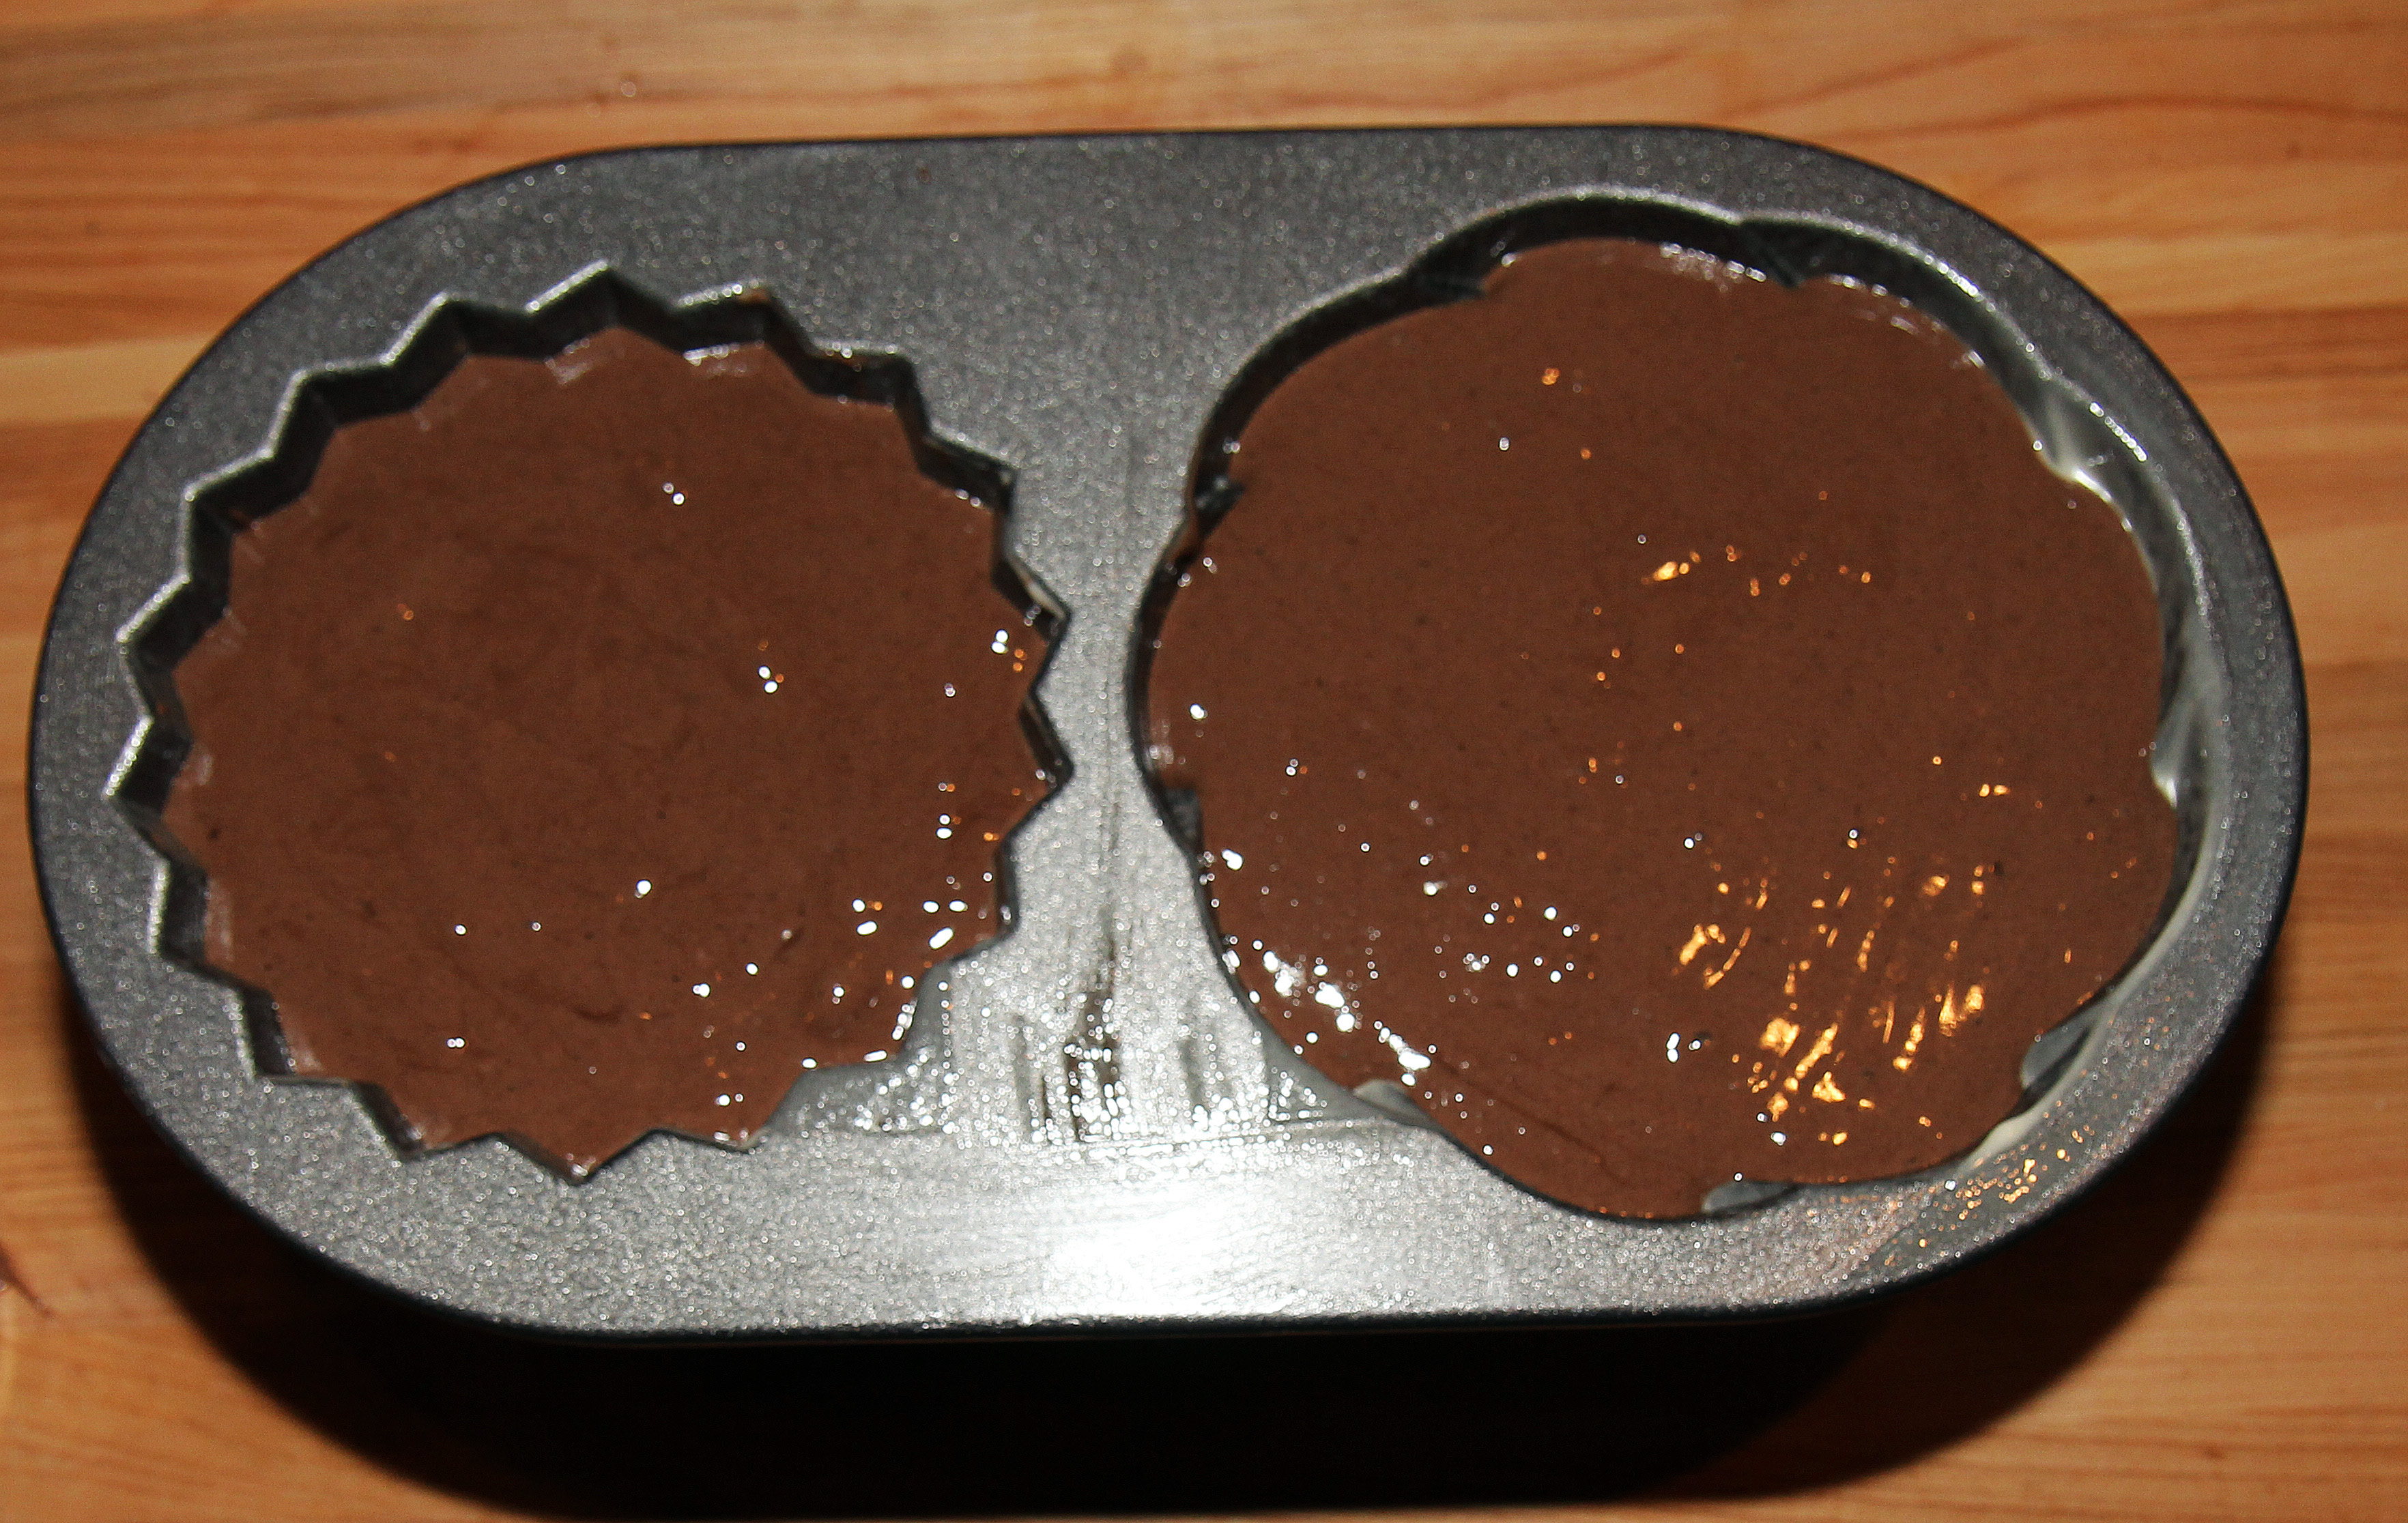 how high to fill cake pan